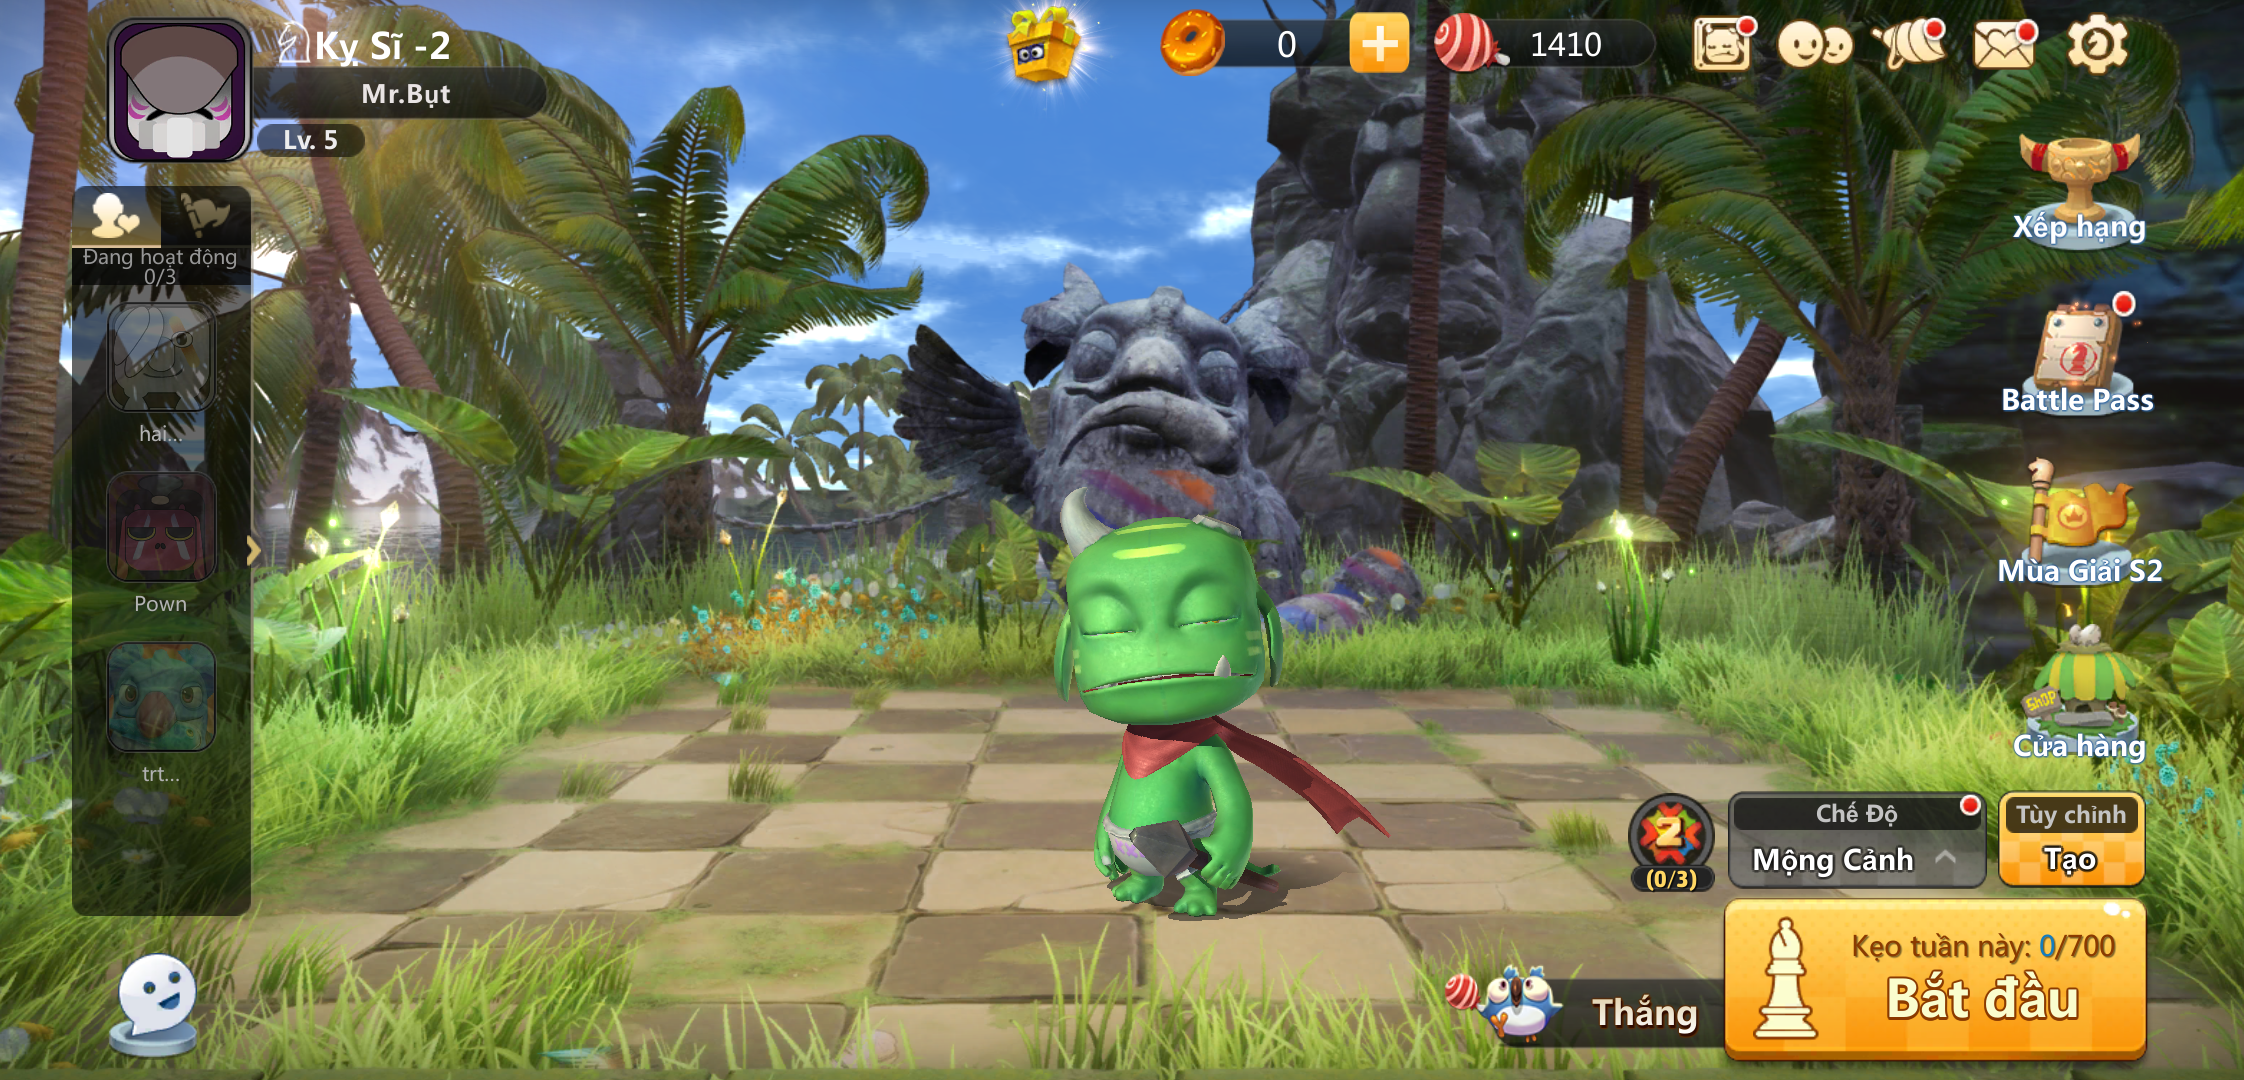 Auto chess mobile VN -VNG